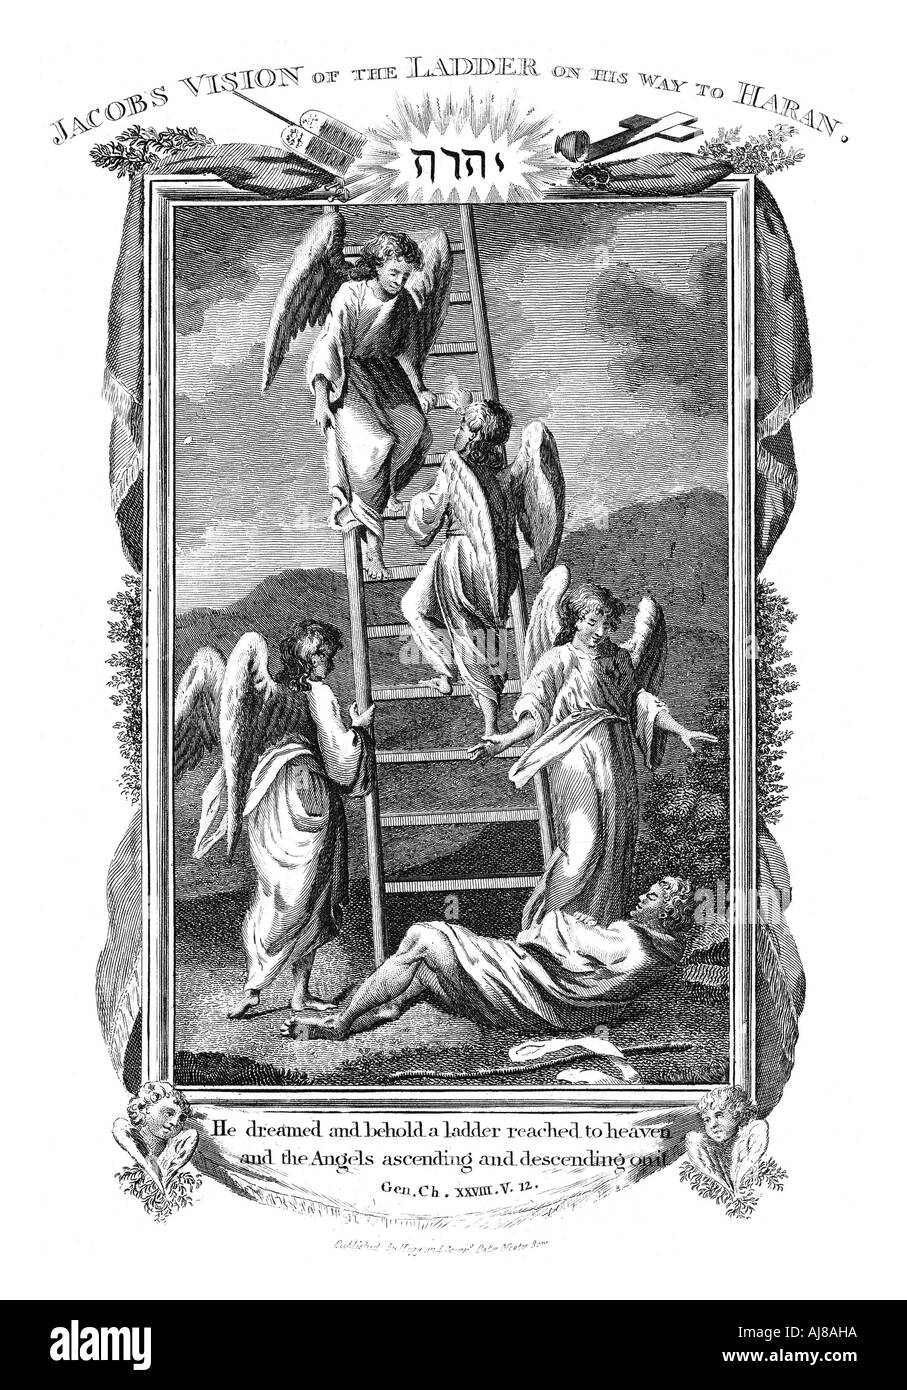 jacob s dream of angels ascending and descending the ladder to